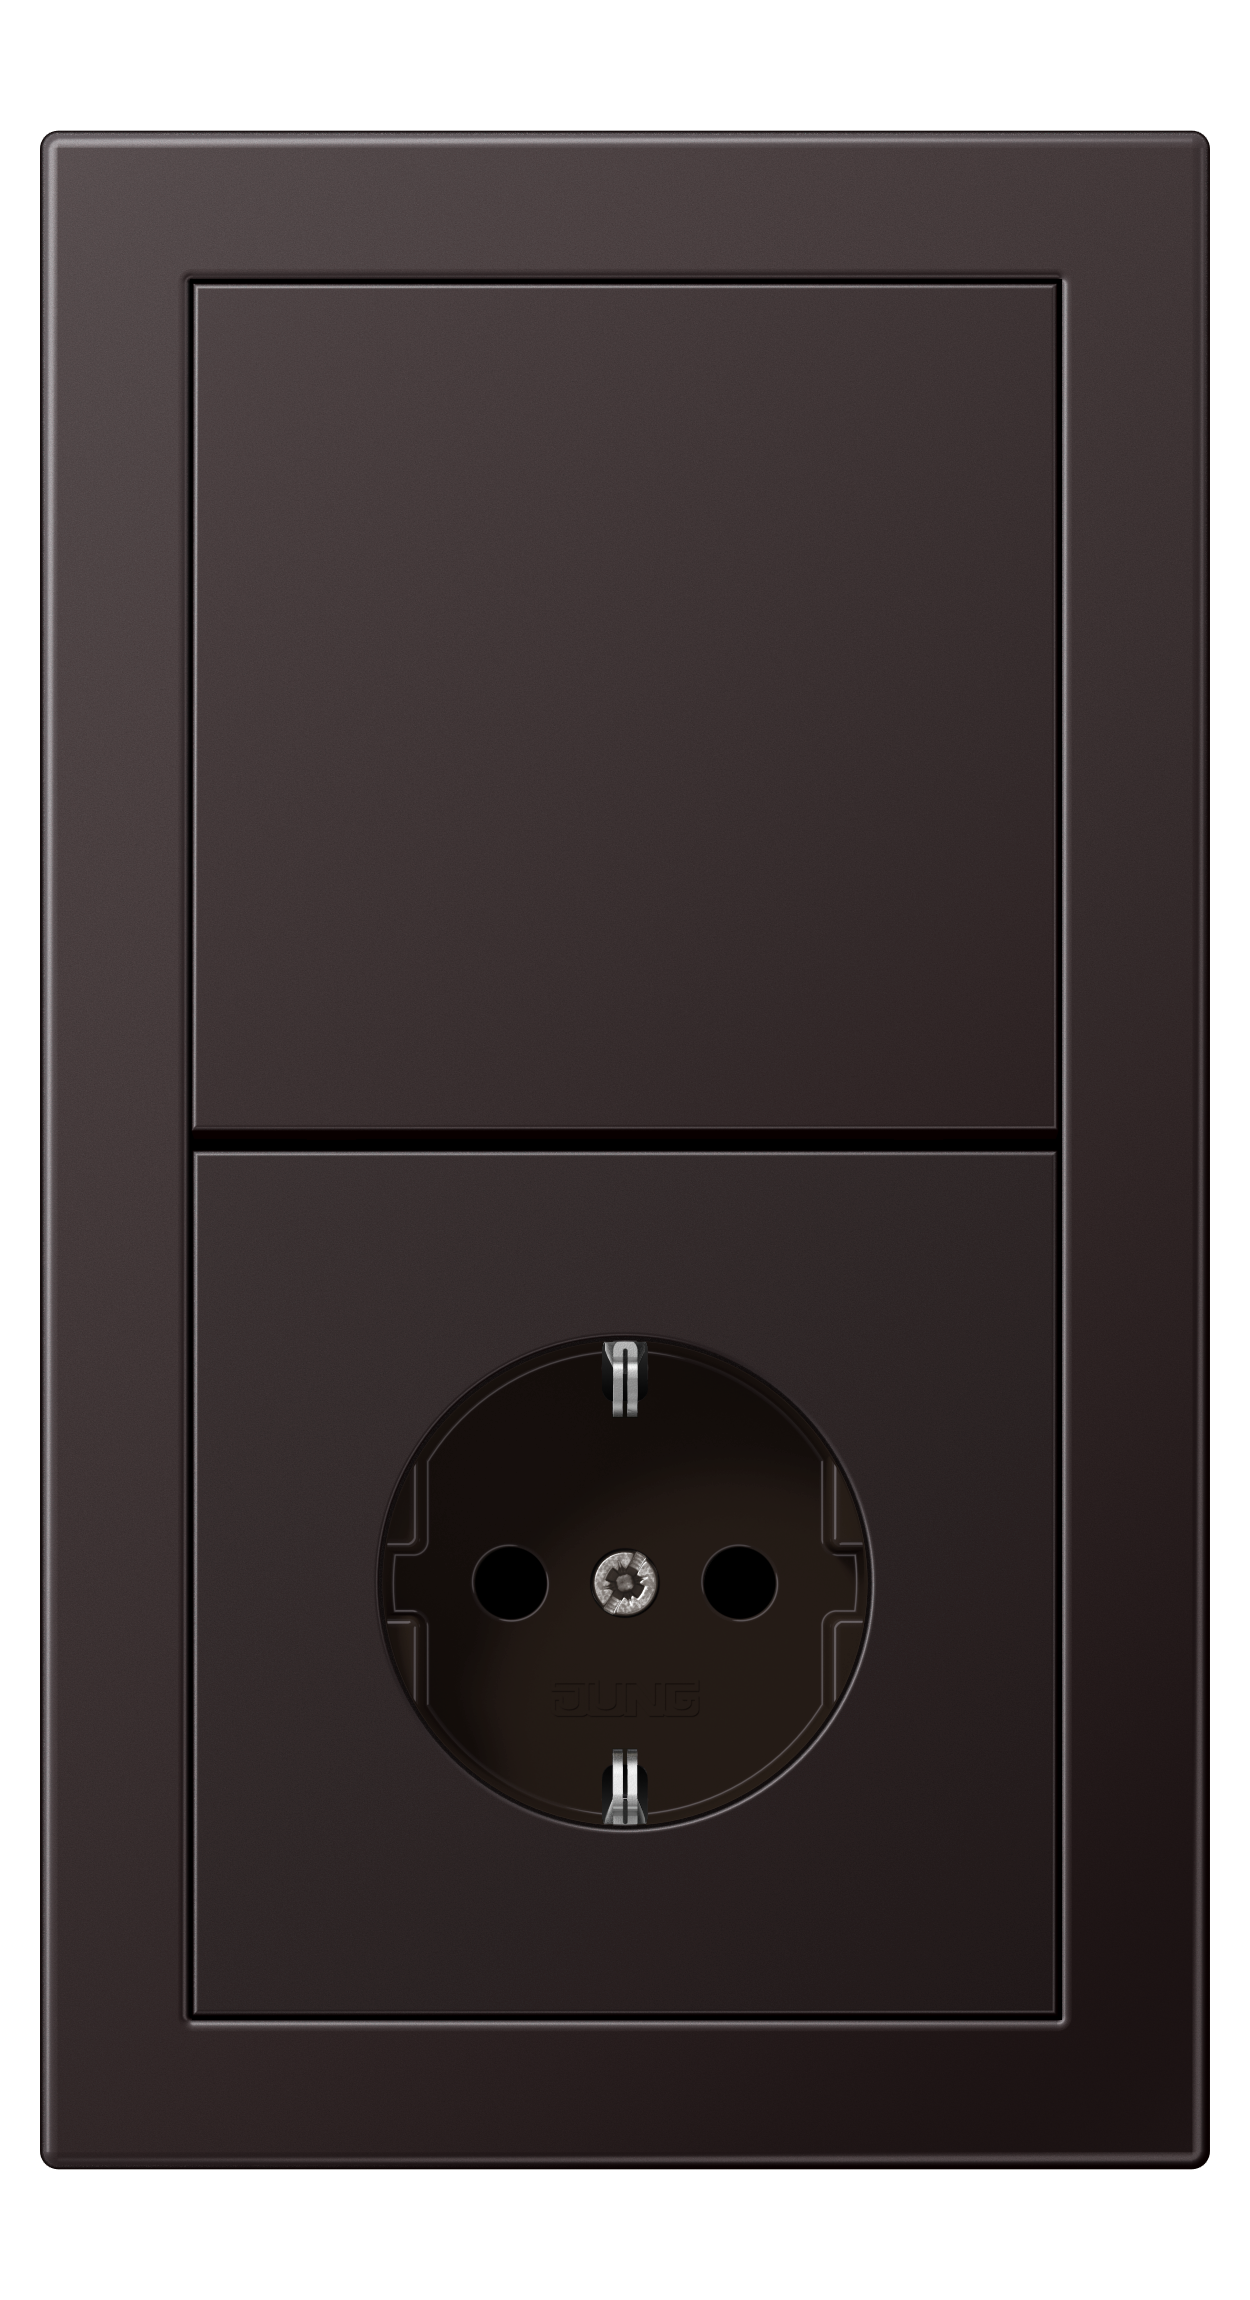 JUNG_LS_Design_aluminium_dark_switch_socket